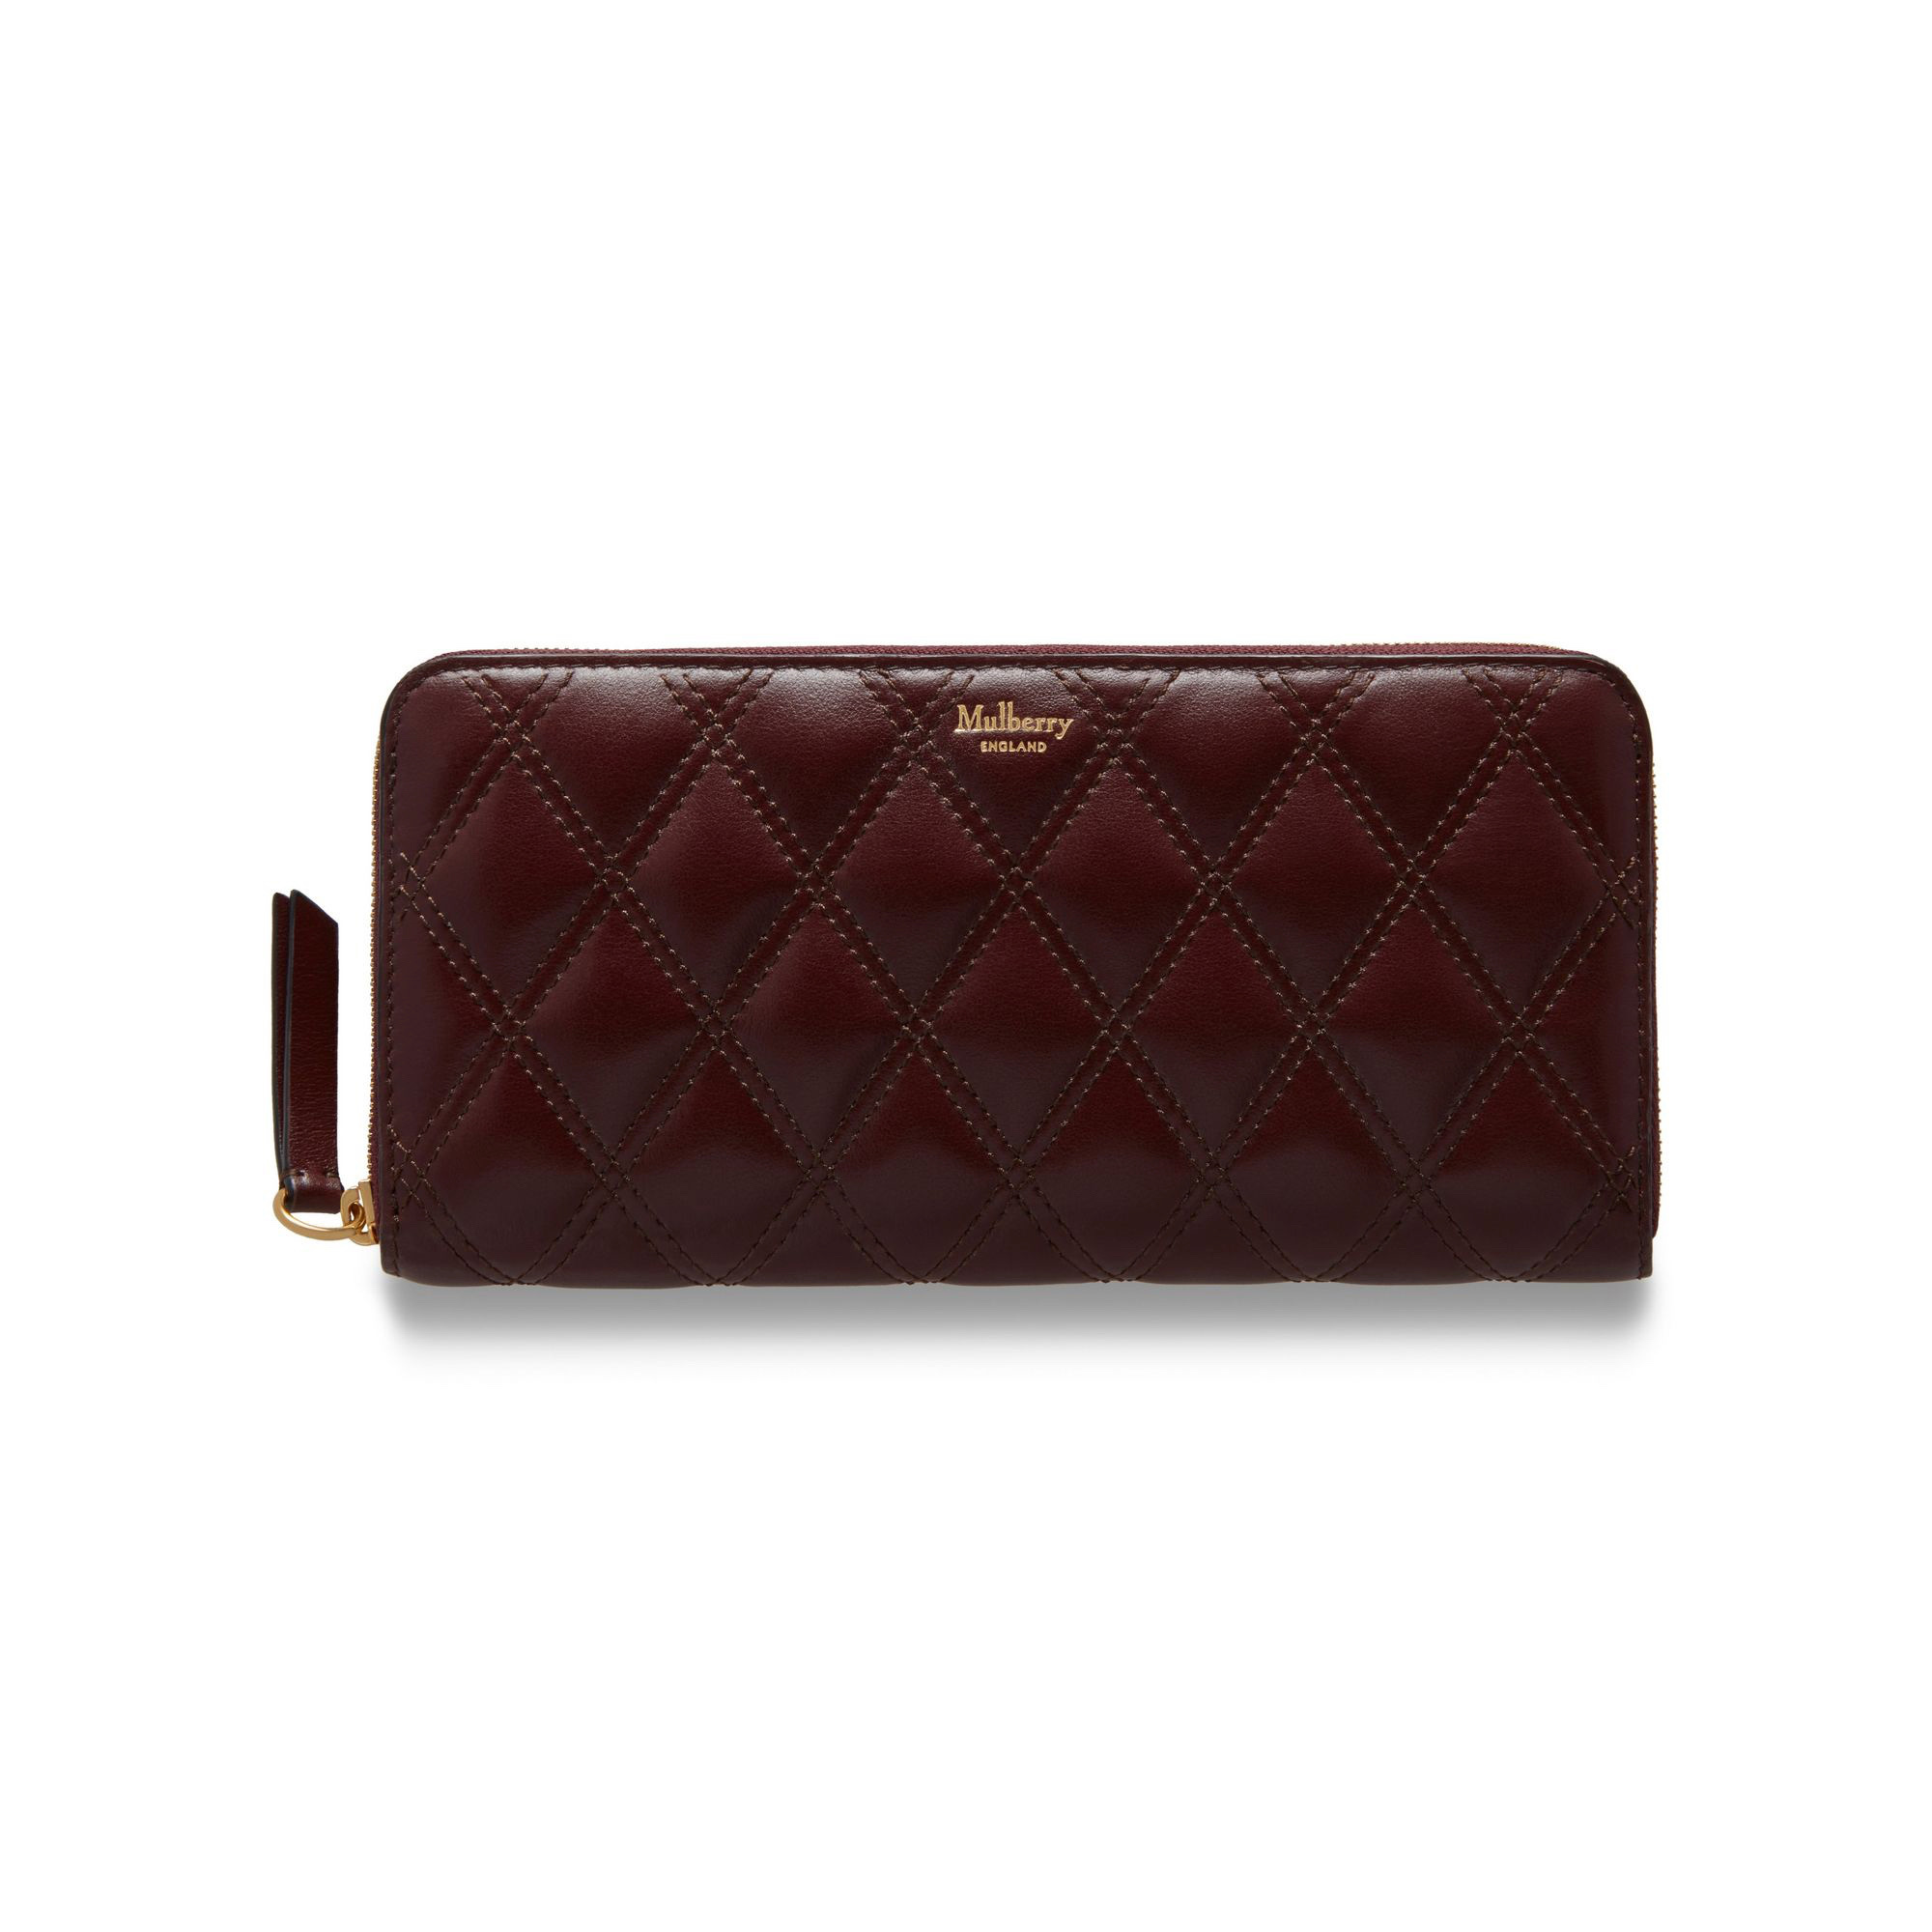 COMING SOON MULBERRY ENGLAND_f0111683_14251811.jpg